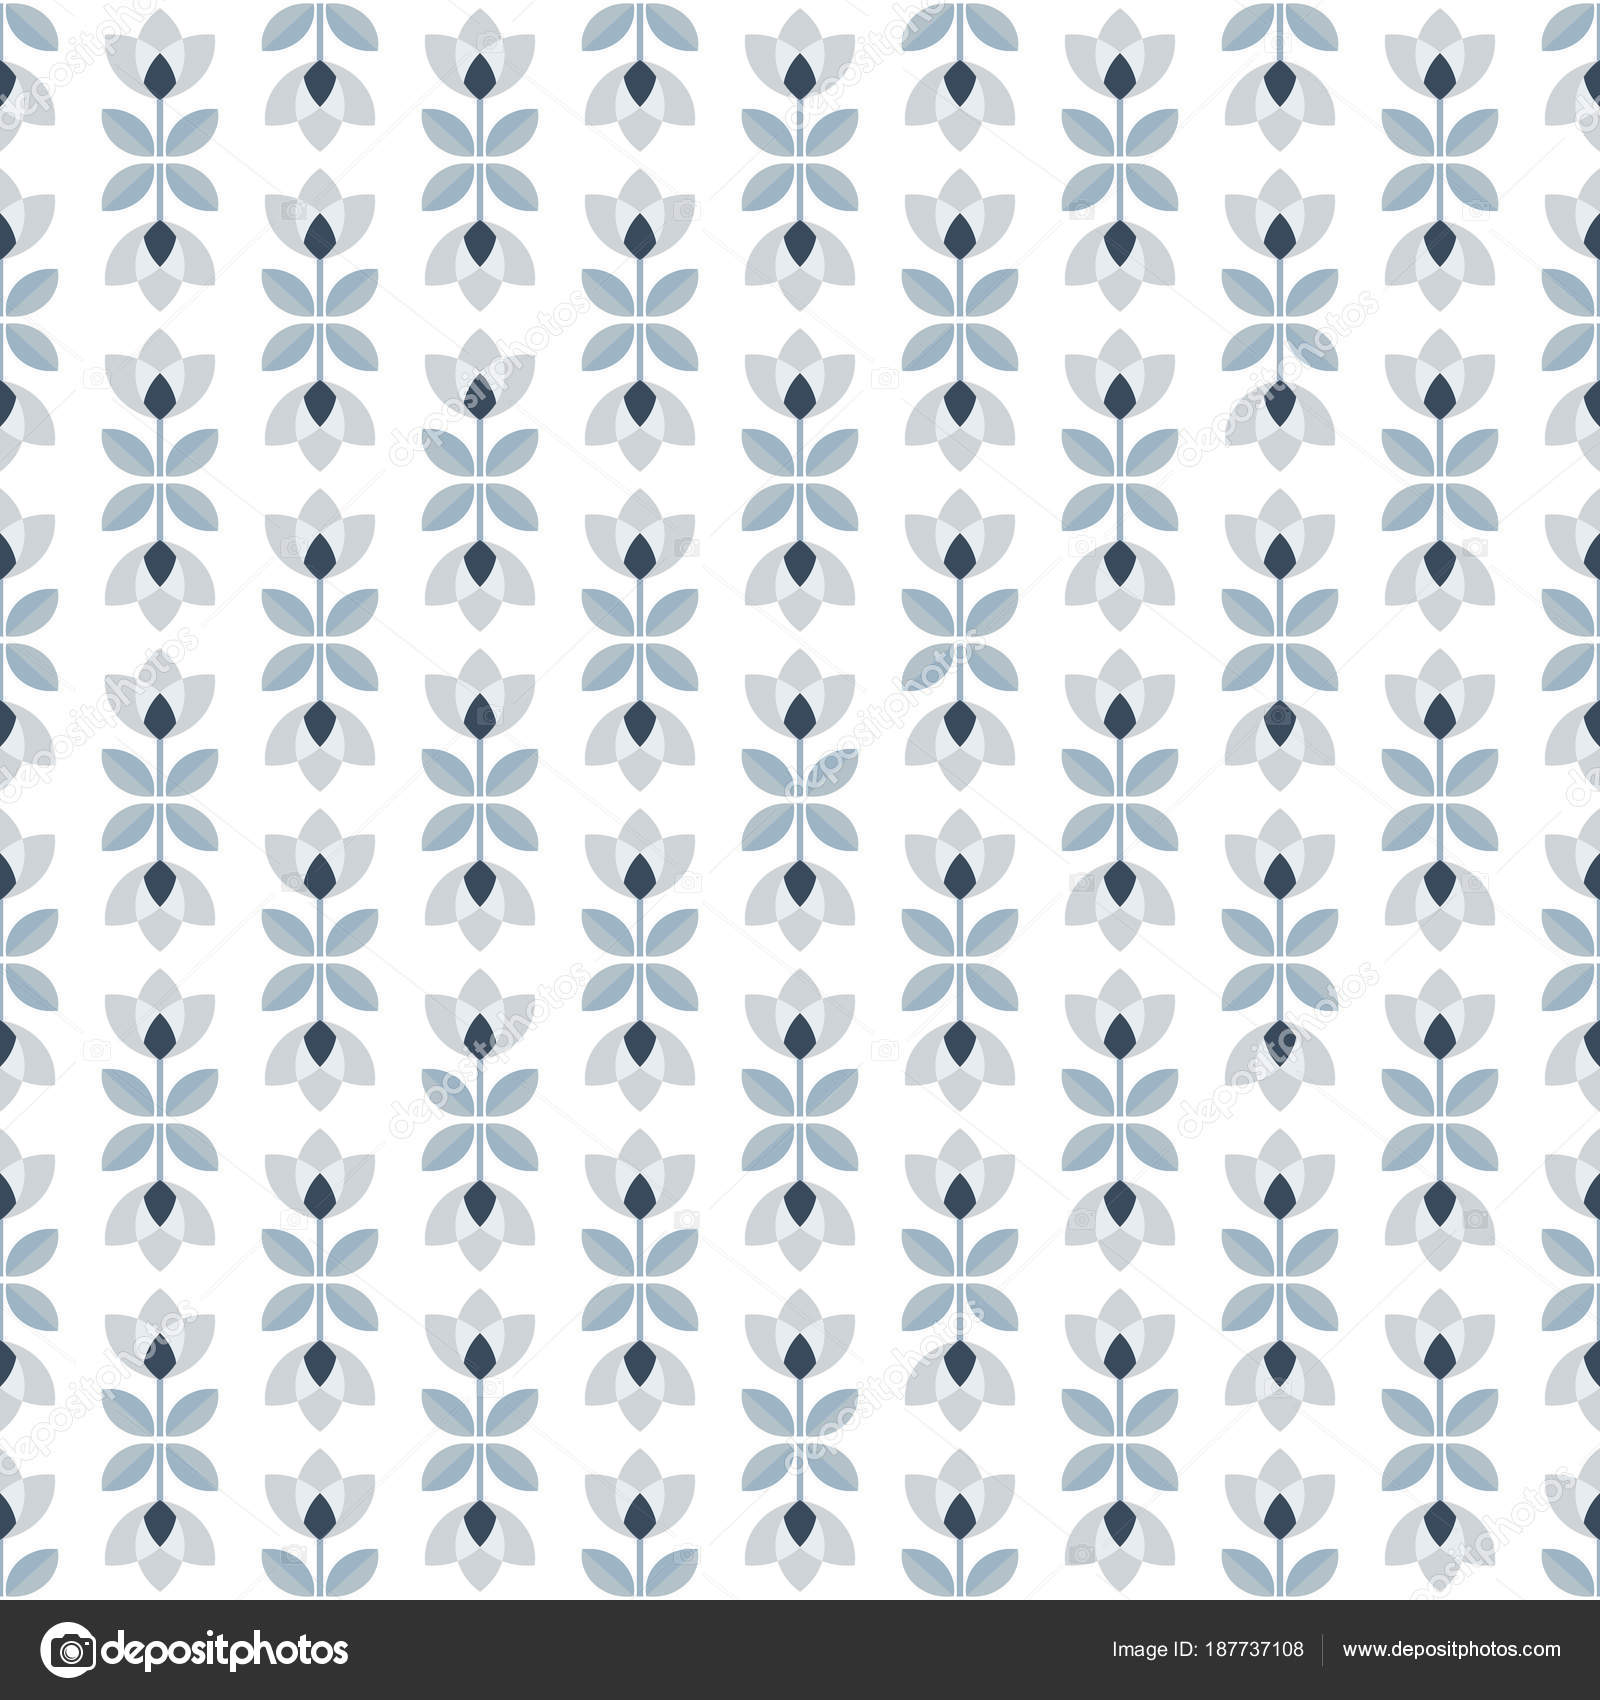 Scandinavian Floral Background Mid Century Wallpaper Seamless Pattern Vector Illustration Retro Interior Home Decor In Navy Blue And Silver Gray Colors